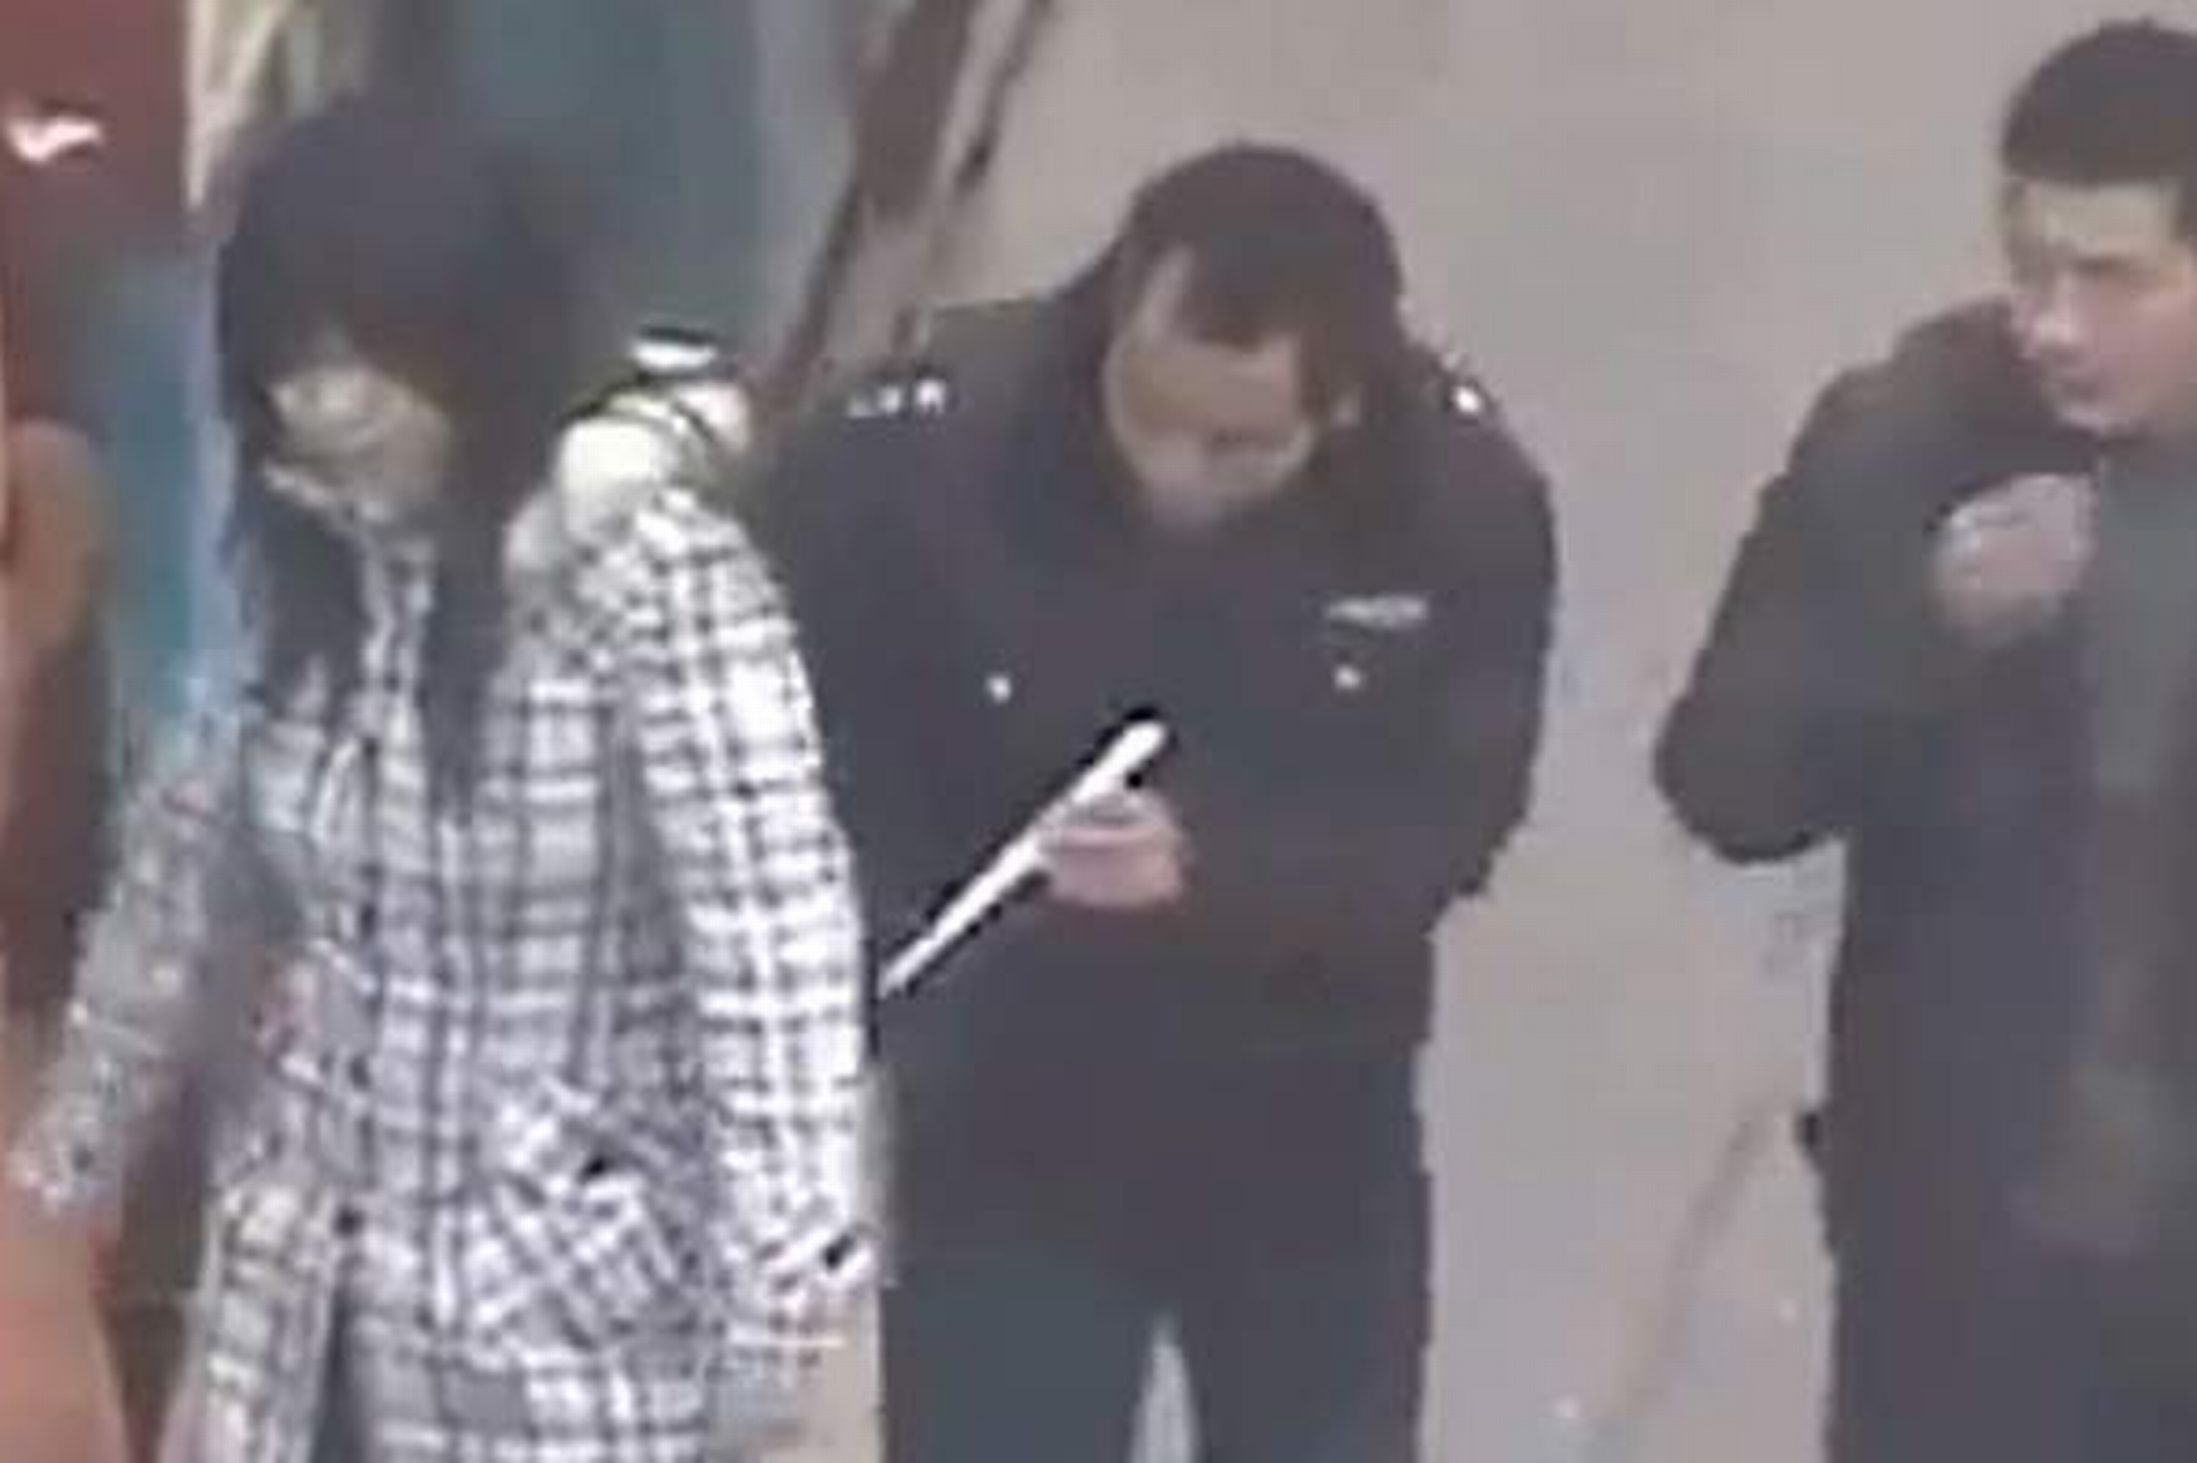 this-is-the-moment-a-brazen-chinese-thief-pickpockets-a-woman-shopper-using-chopsticks-pic-swns-56985288